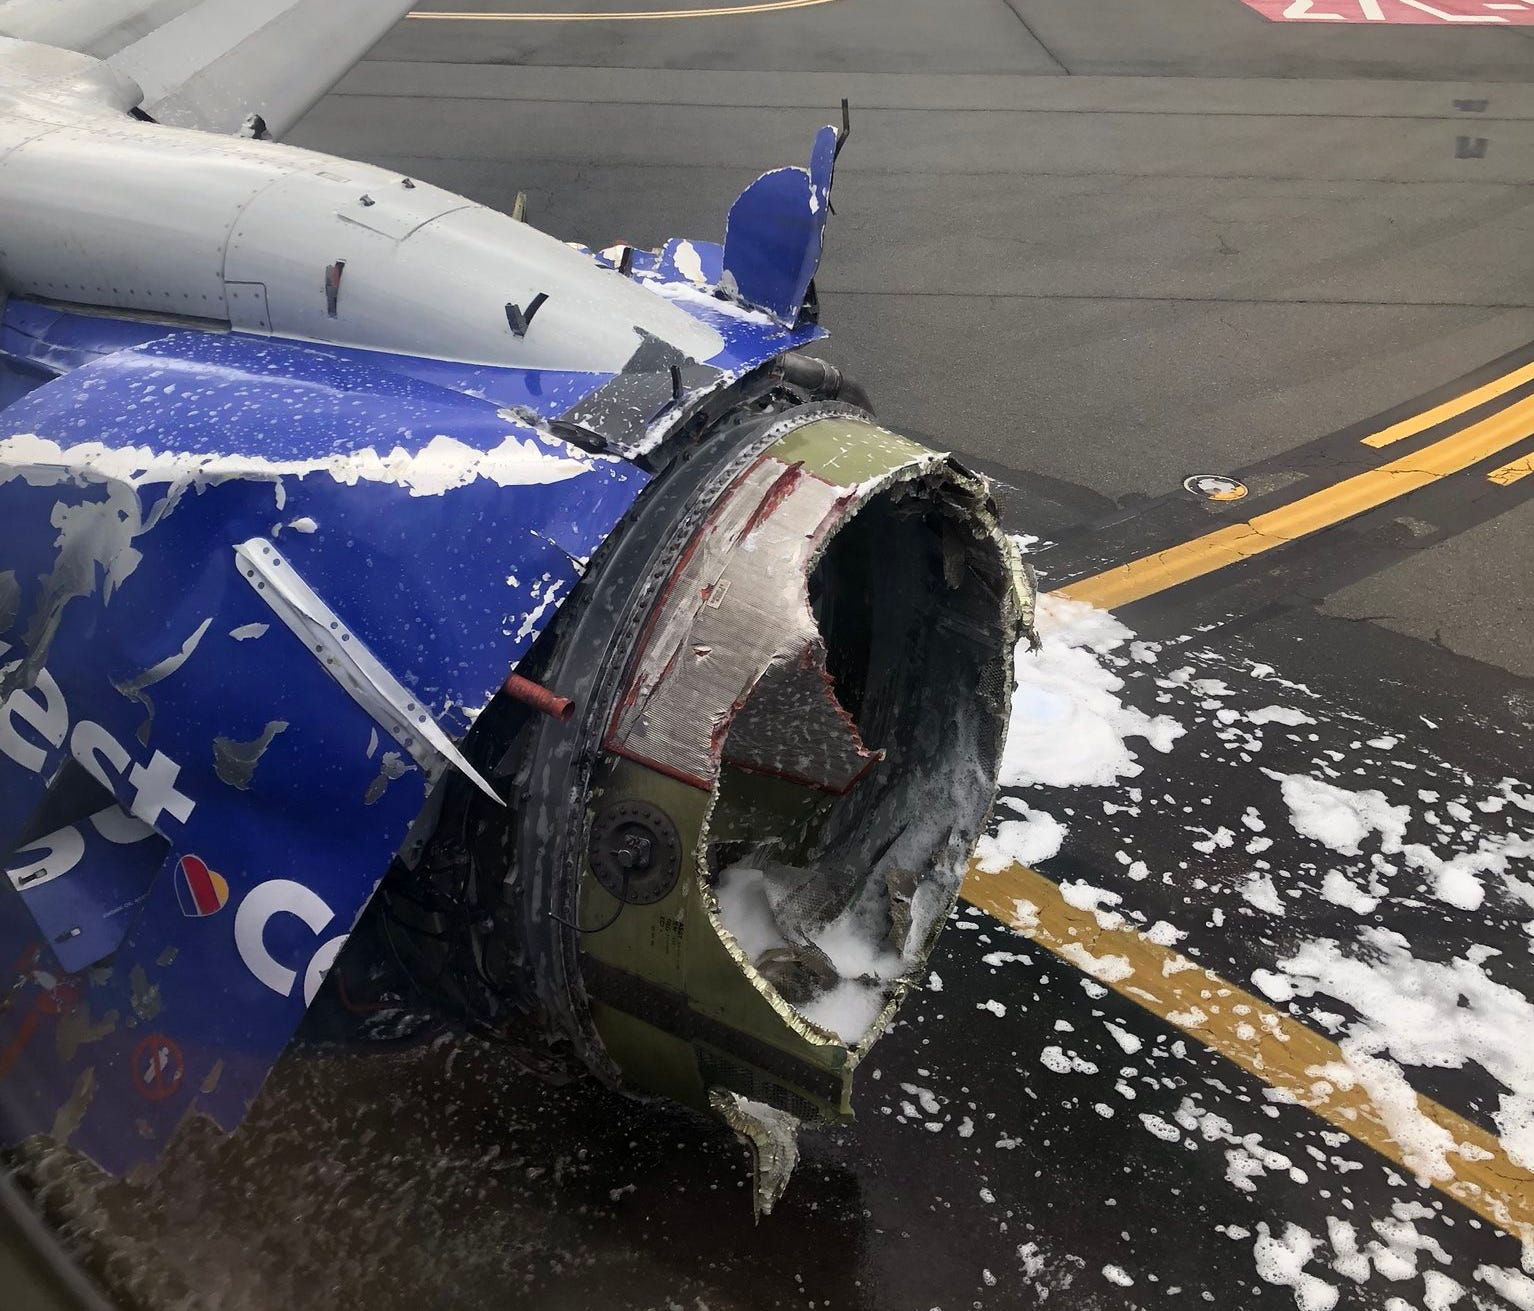 Twitter Image showing what appears to be the damaged engine on a Southwest Airlines airplane on April 17, 2018.